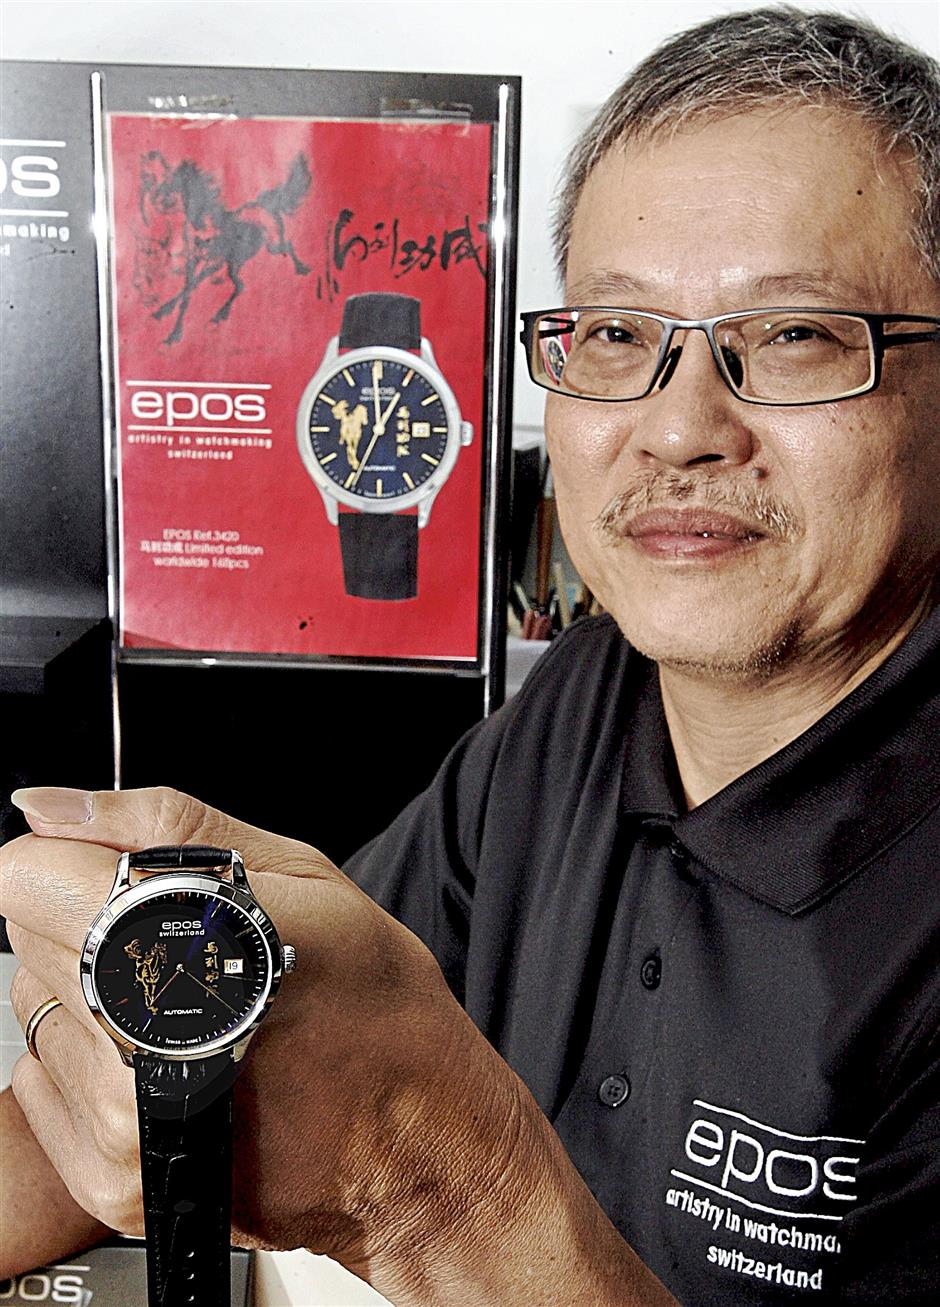 ATG Watch Sdn Bhd chief executive officer Tham Onn Chuan with the Epos Limited Edition Horse Watch, released to commemorate the Year of the Horse.